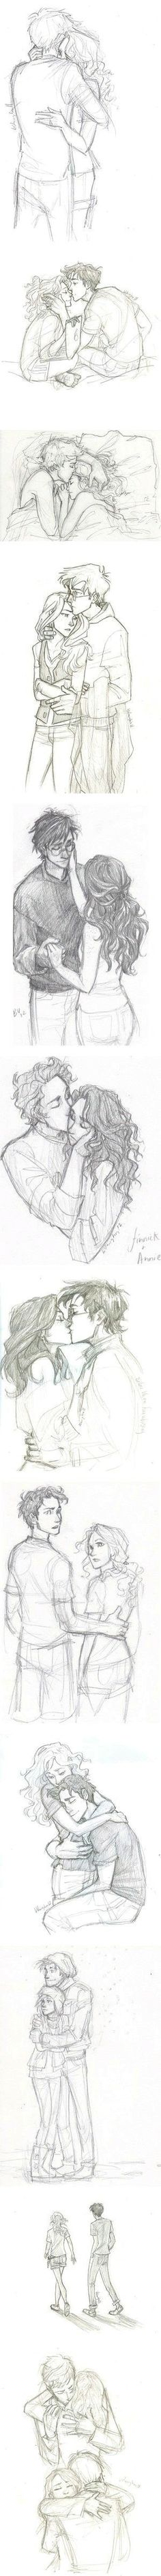 I love all of the James and Lily pictures! They're the cutest couple in man/book-kind